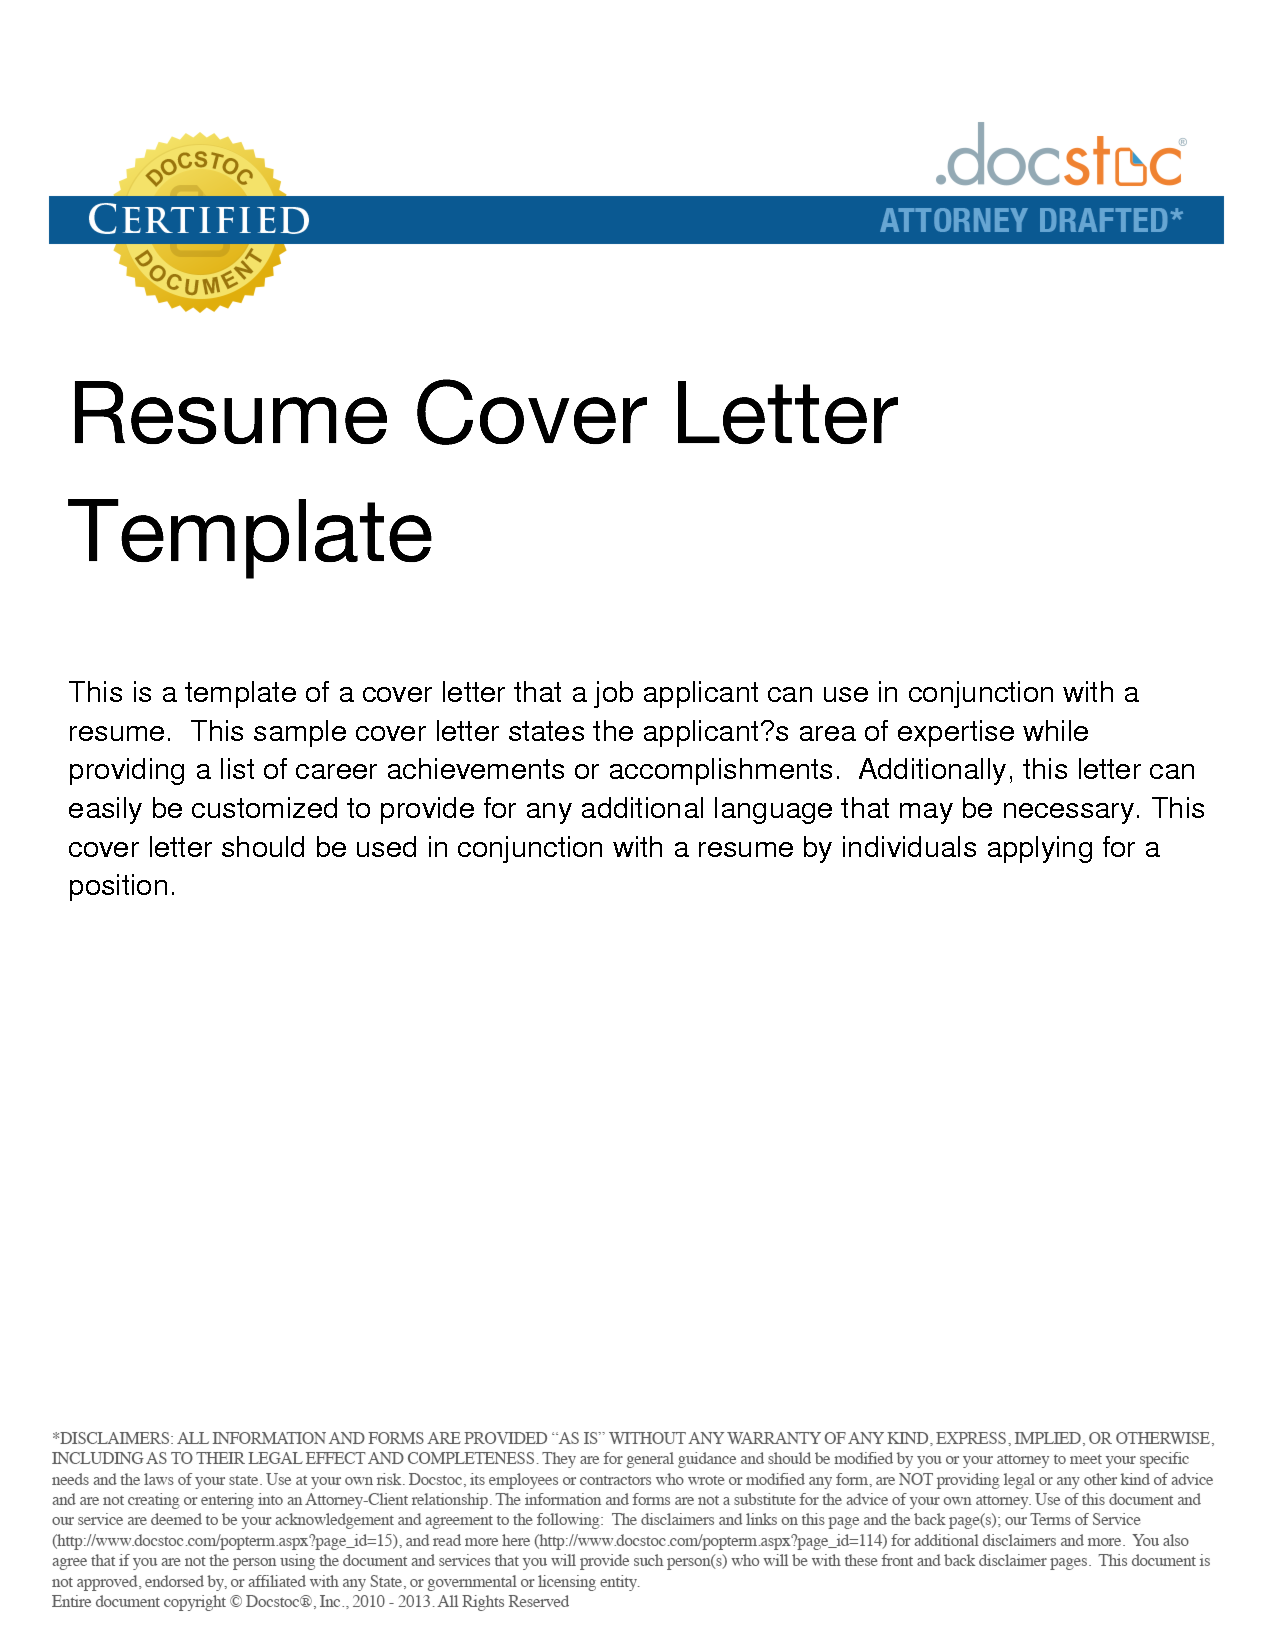 what does a resume cover letter consist of